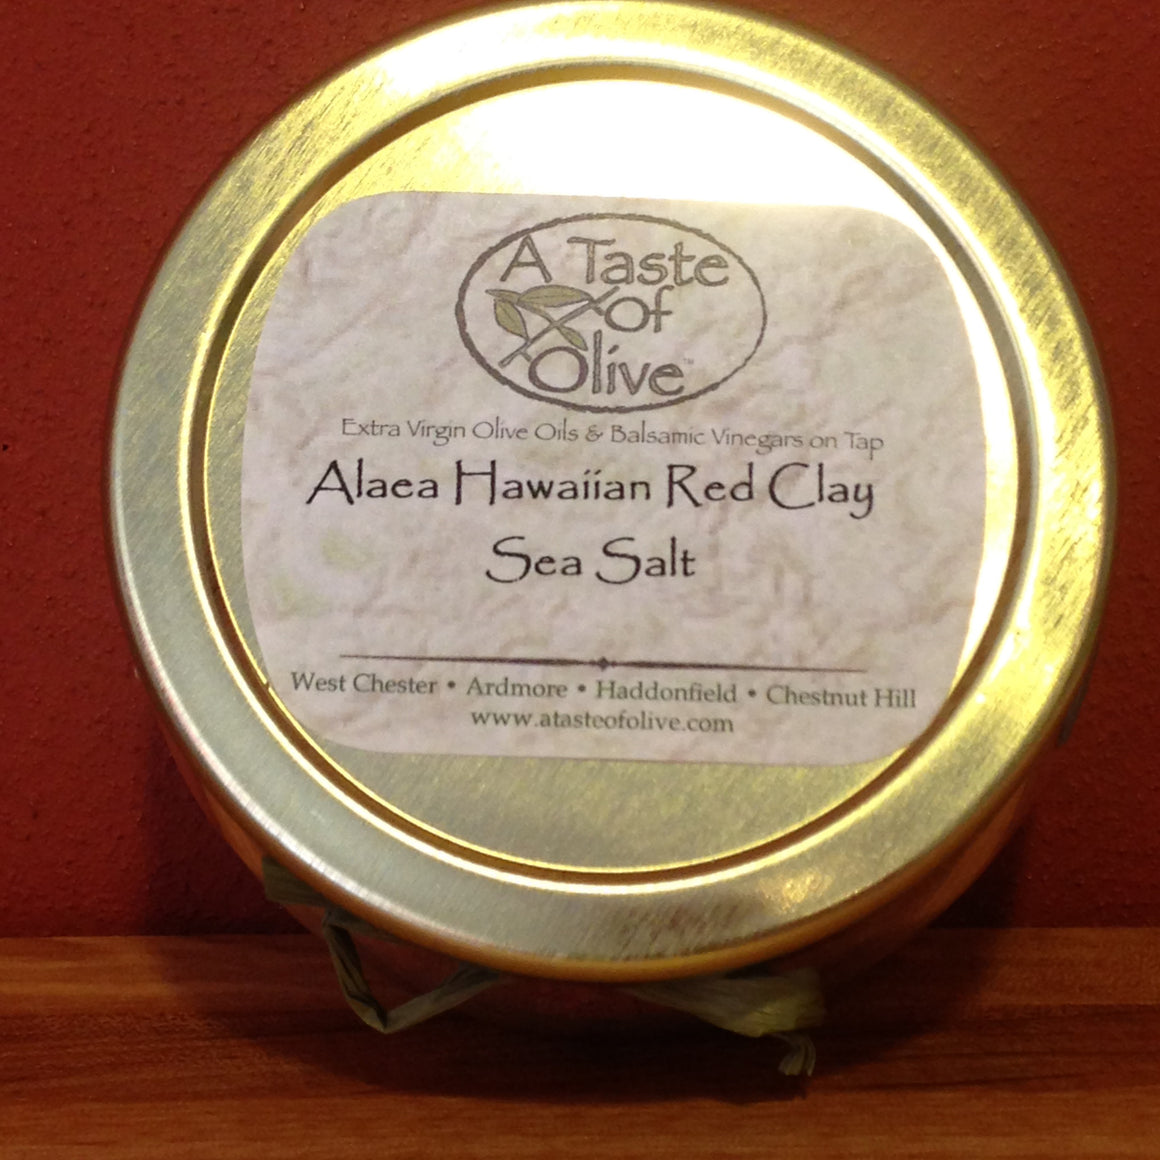 Alaea Hawaiian Red Clay Sea Salt - A Taste of Olive  - 1